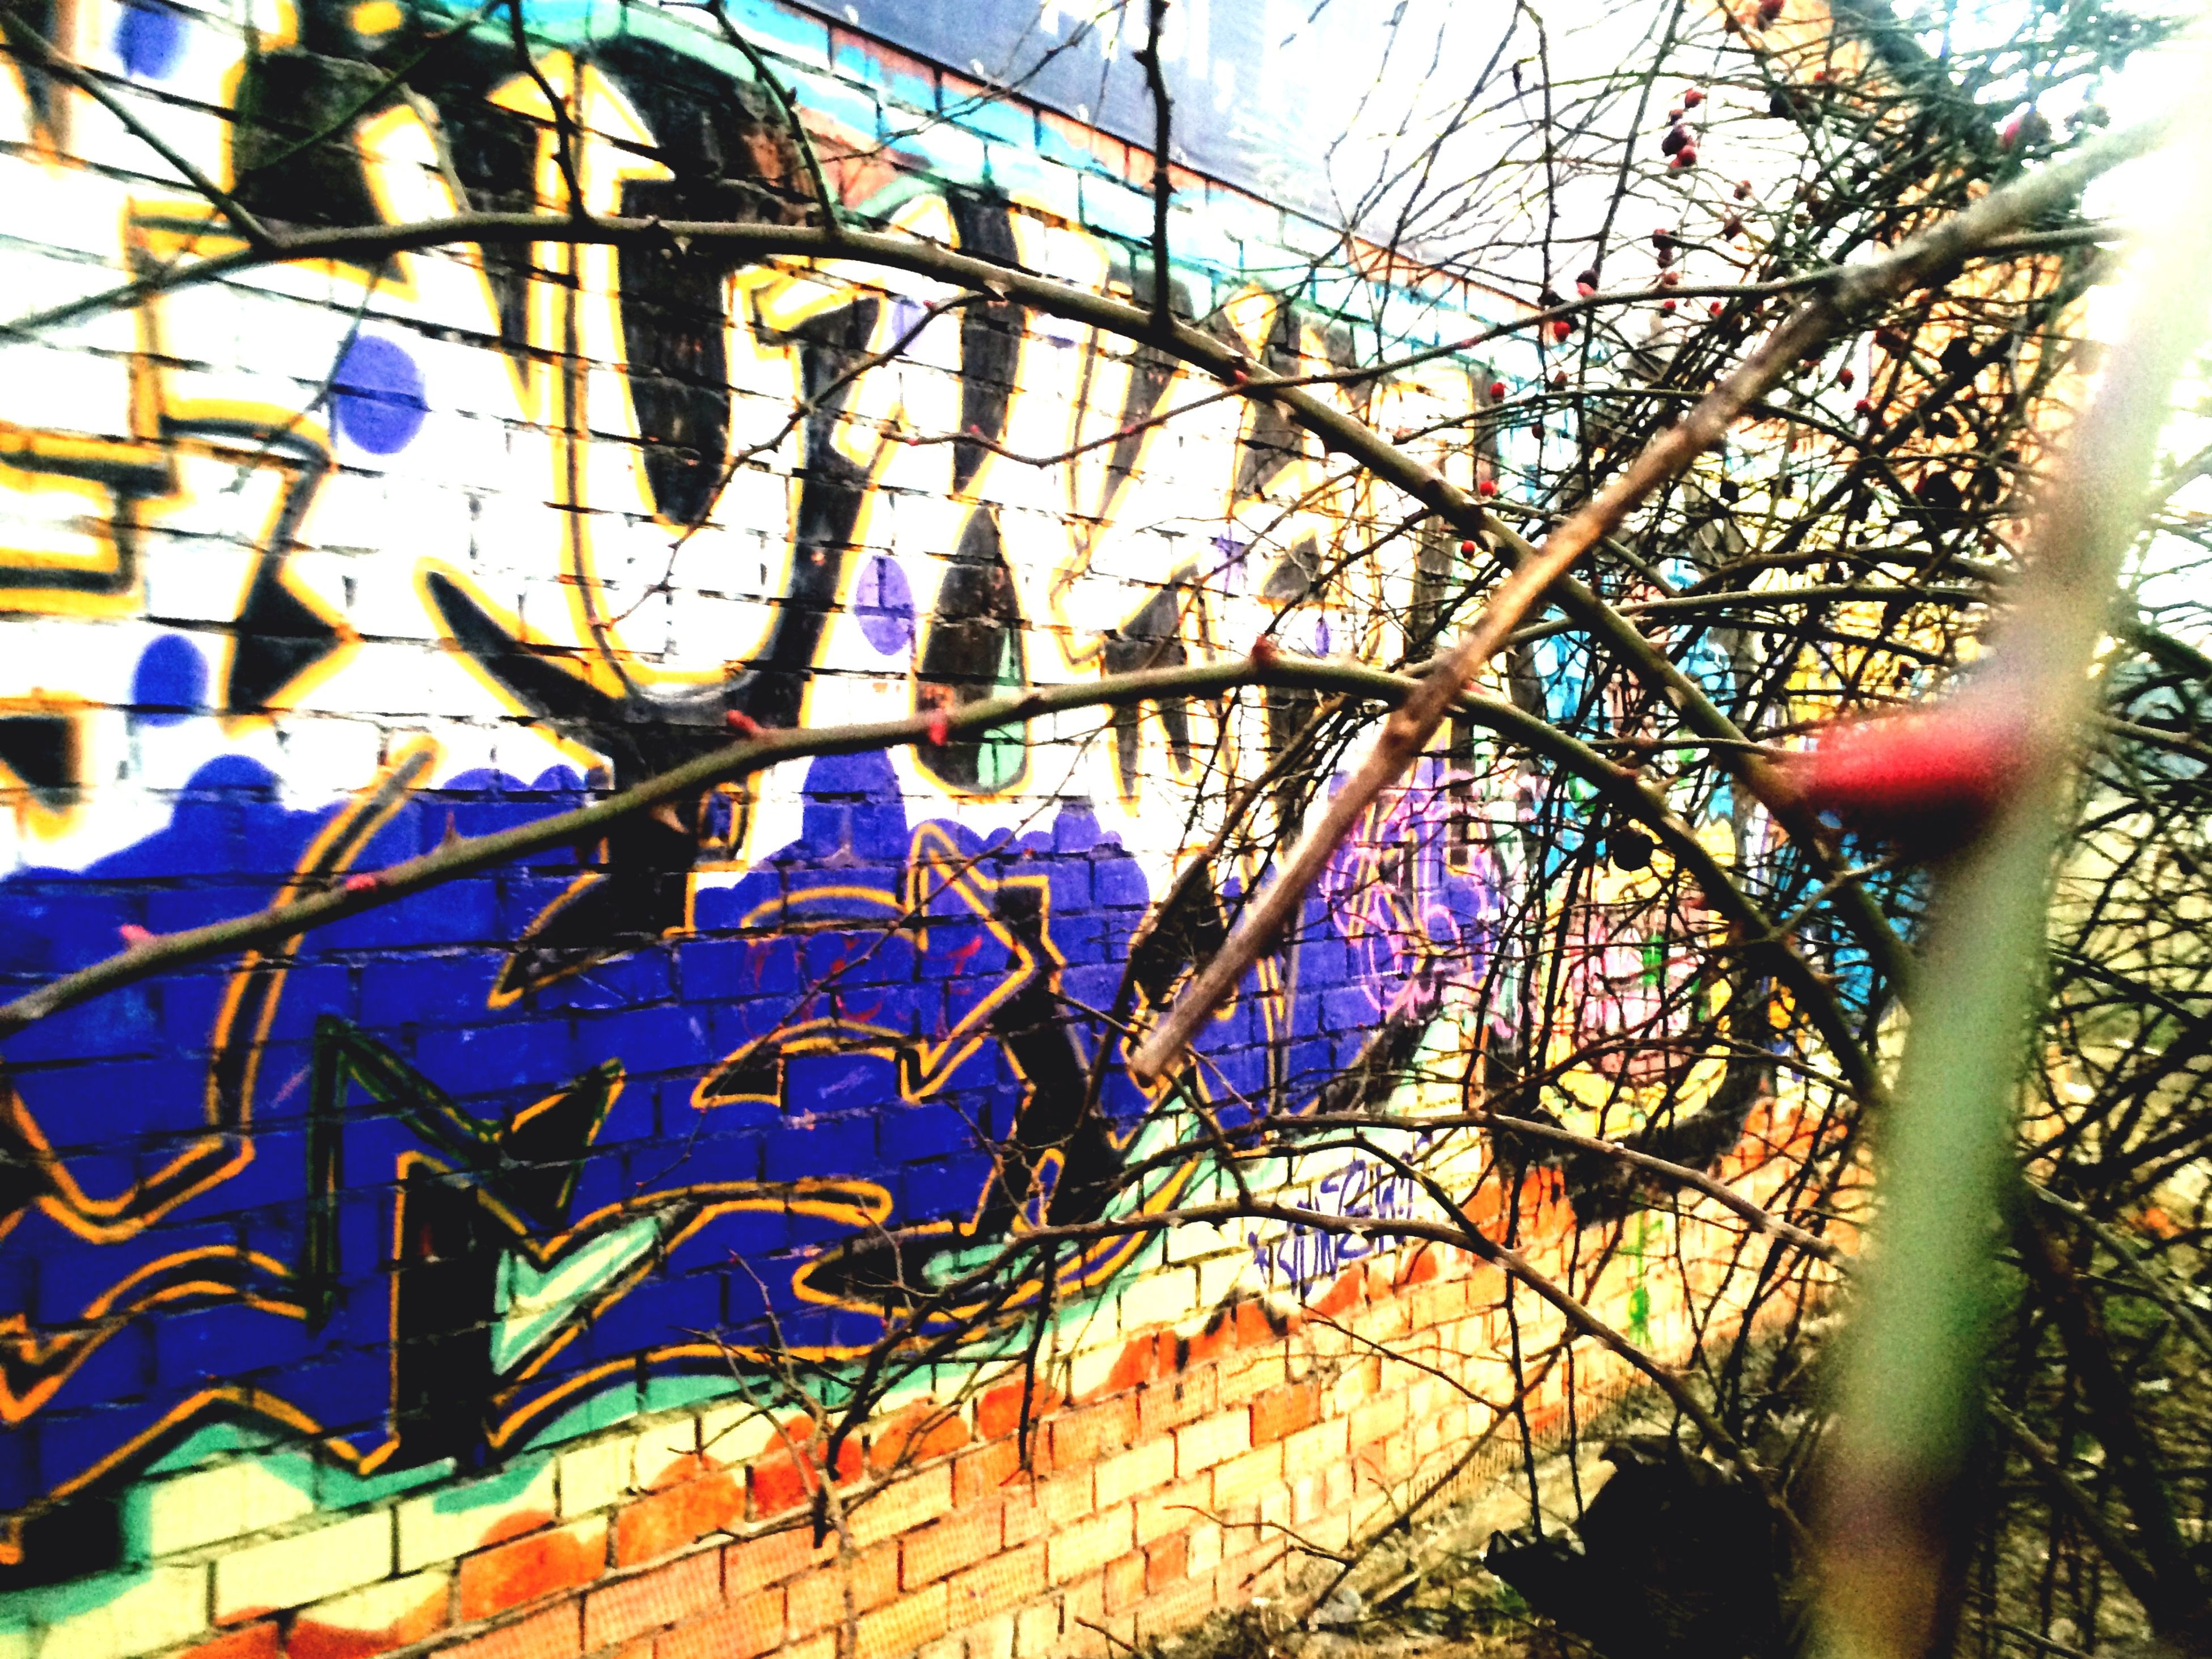 graffiti, built structure, architecture, building exterior, creativity, multi colored, low angle view, blue, art, text, art and craft, wall - building feature, communication, day, western script, tree, sky, outdoors, no people, wall